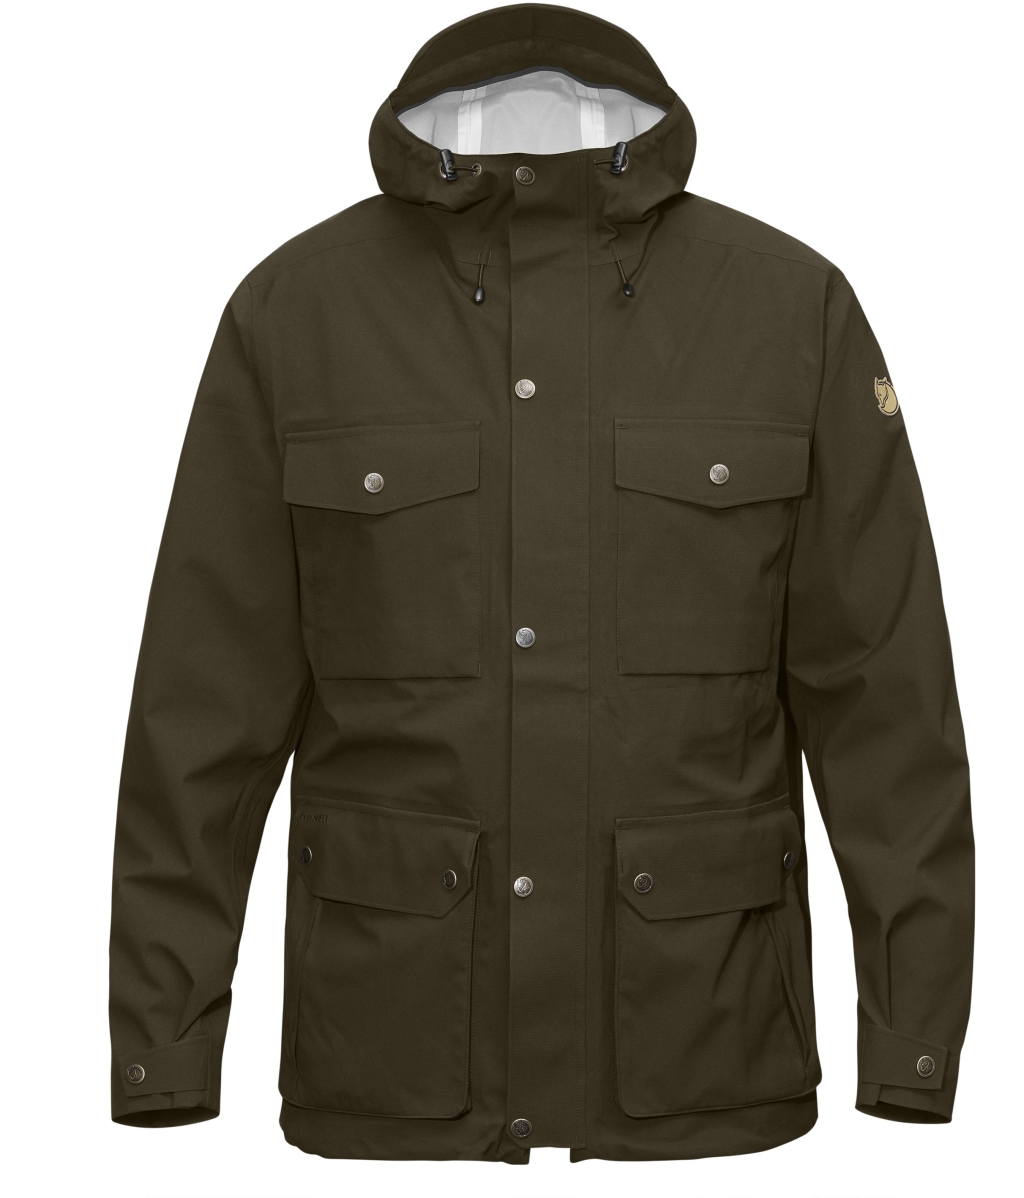 FjallRaven Ovik Eco-Shell Jacket Dark Olive-30